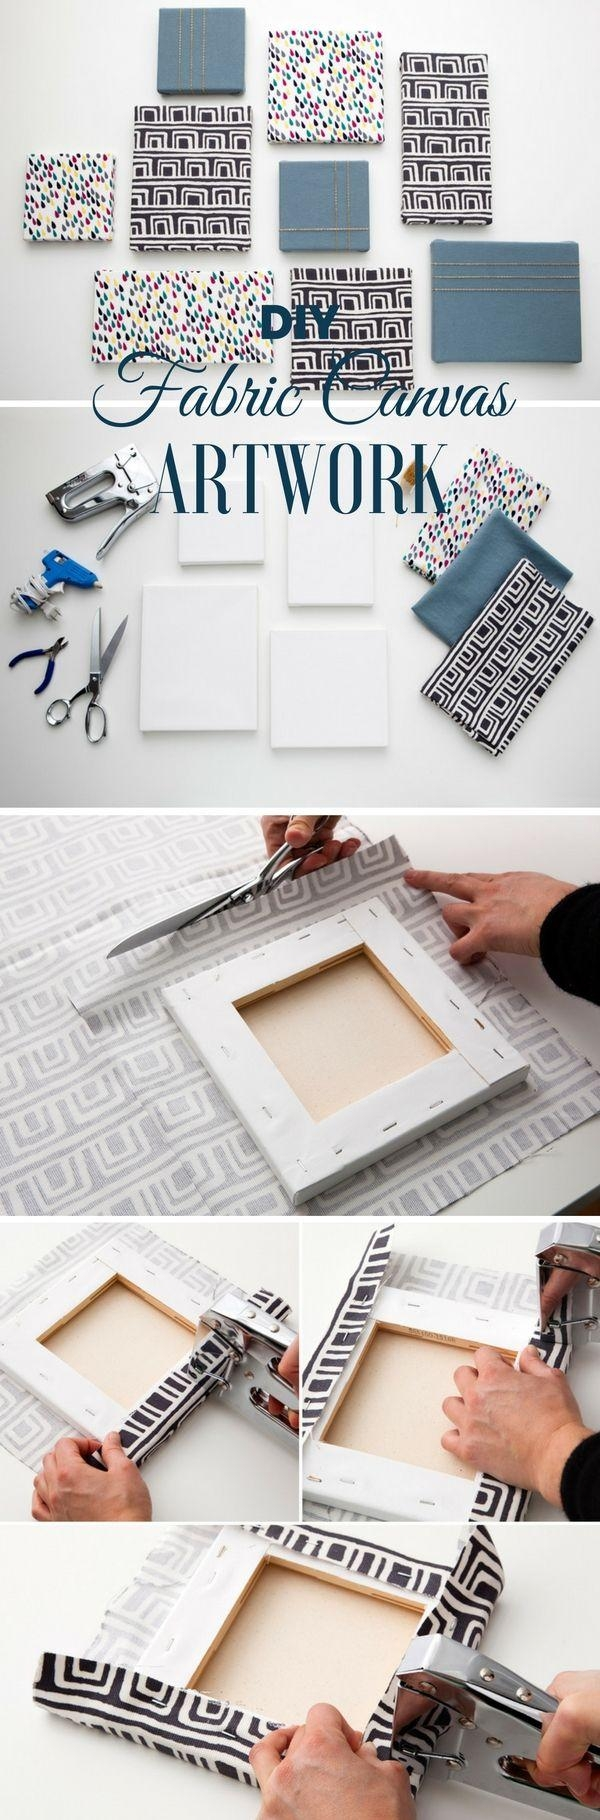 Best 10+ Diy Wall Art Ideas On Pinterest | Diy Art, Diy Wall Decor Intended For Pinterest Diy Wall Art (Image 3 of 20)